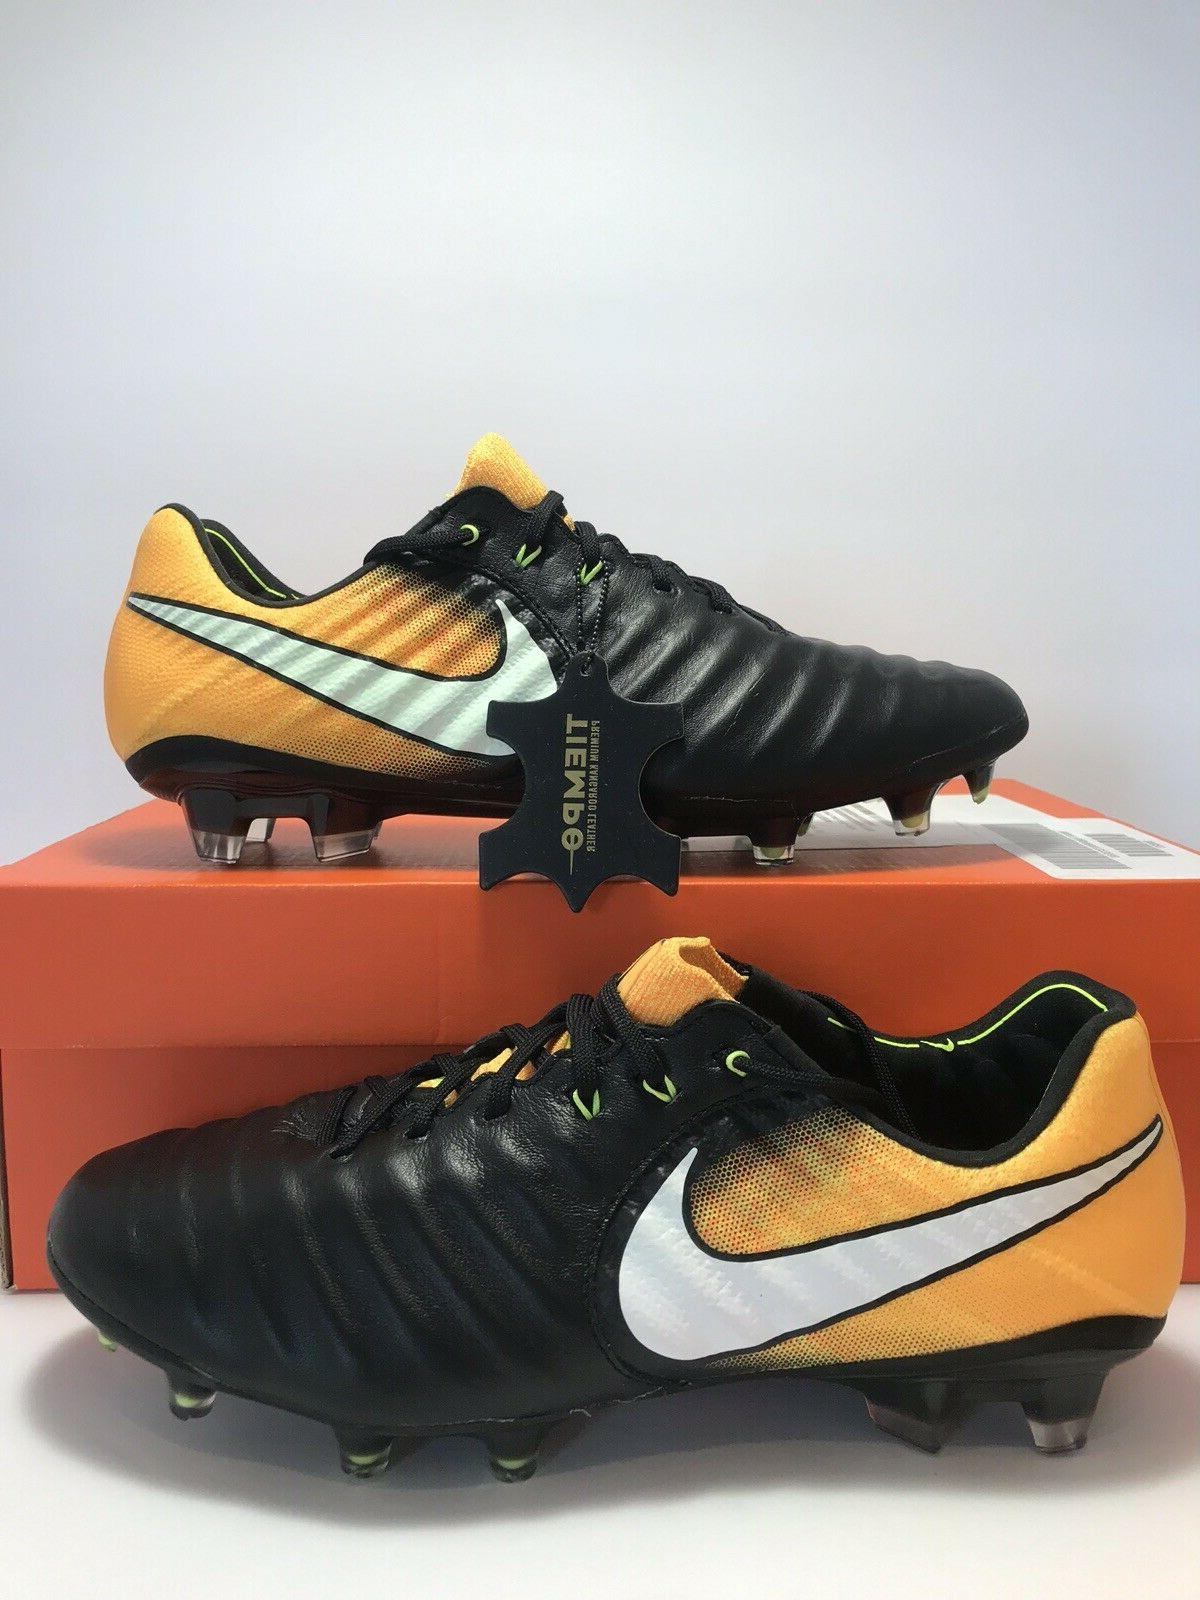 Nike Size 7 Tiempo Acc Soccer Cleats